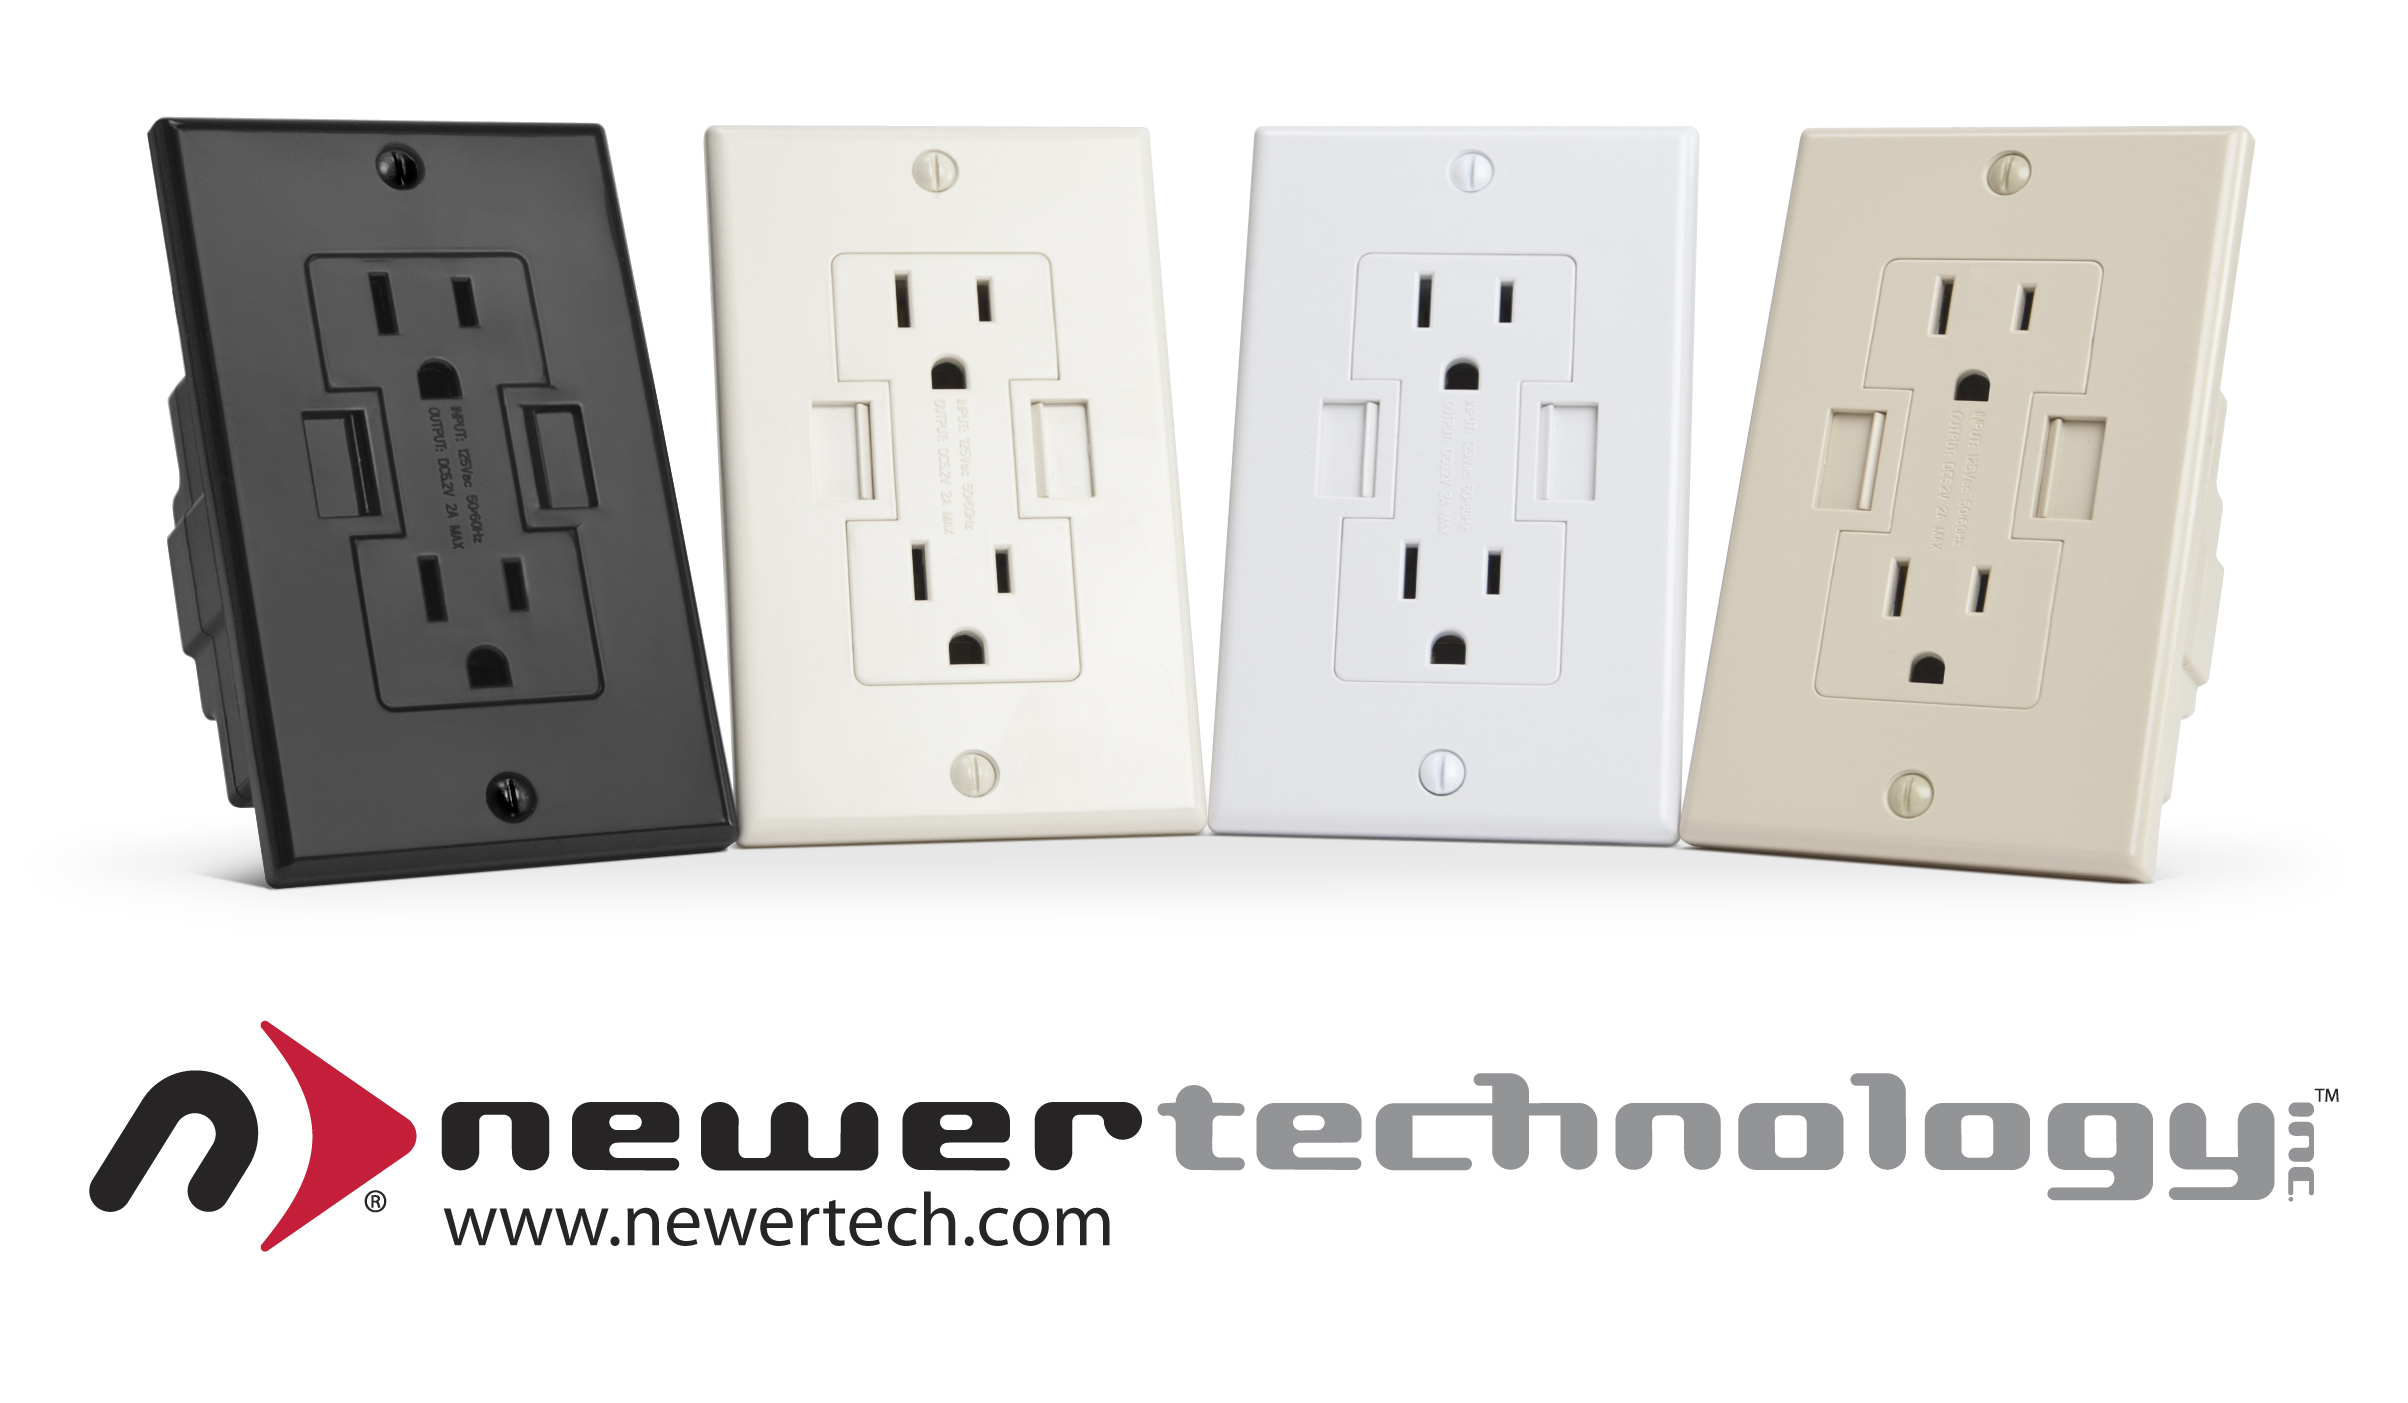 First And Only Patented Ul Listed Ac Usb Outlet From 22 99 Offers Black Ivory Light Almond Color Options To Complement Any Interior Decor